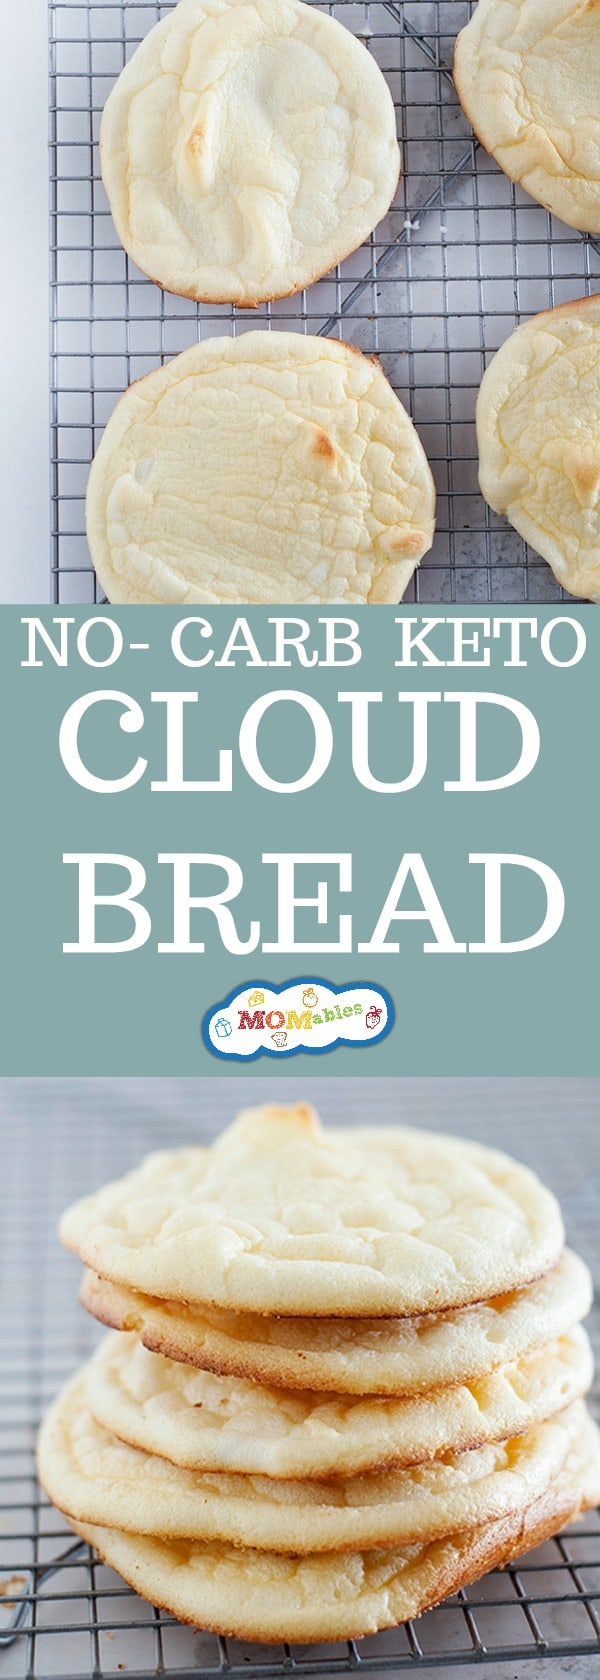 No carb, gluten-free, and full of fluffy texture, this cloud bread is going to blow your taste buds. Also, the perfect substitute for bread.